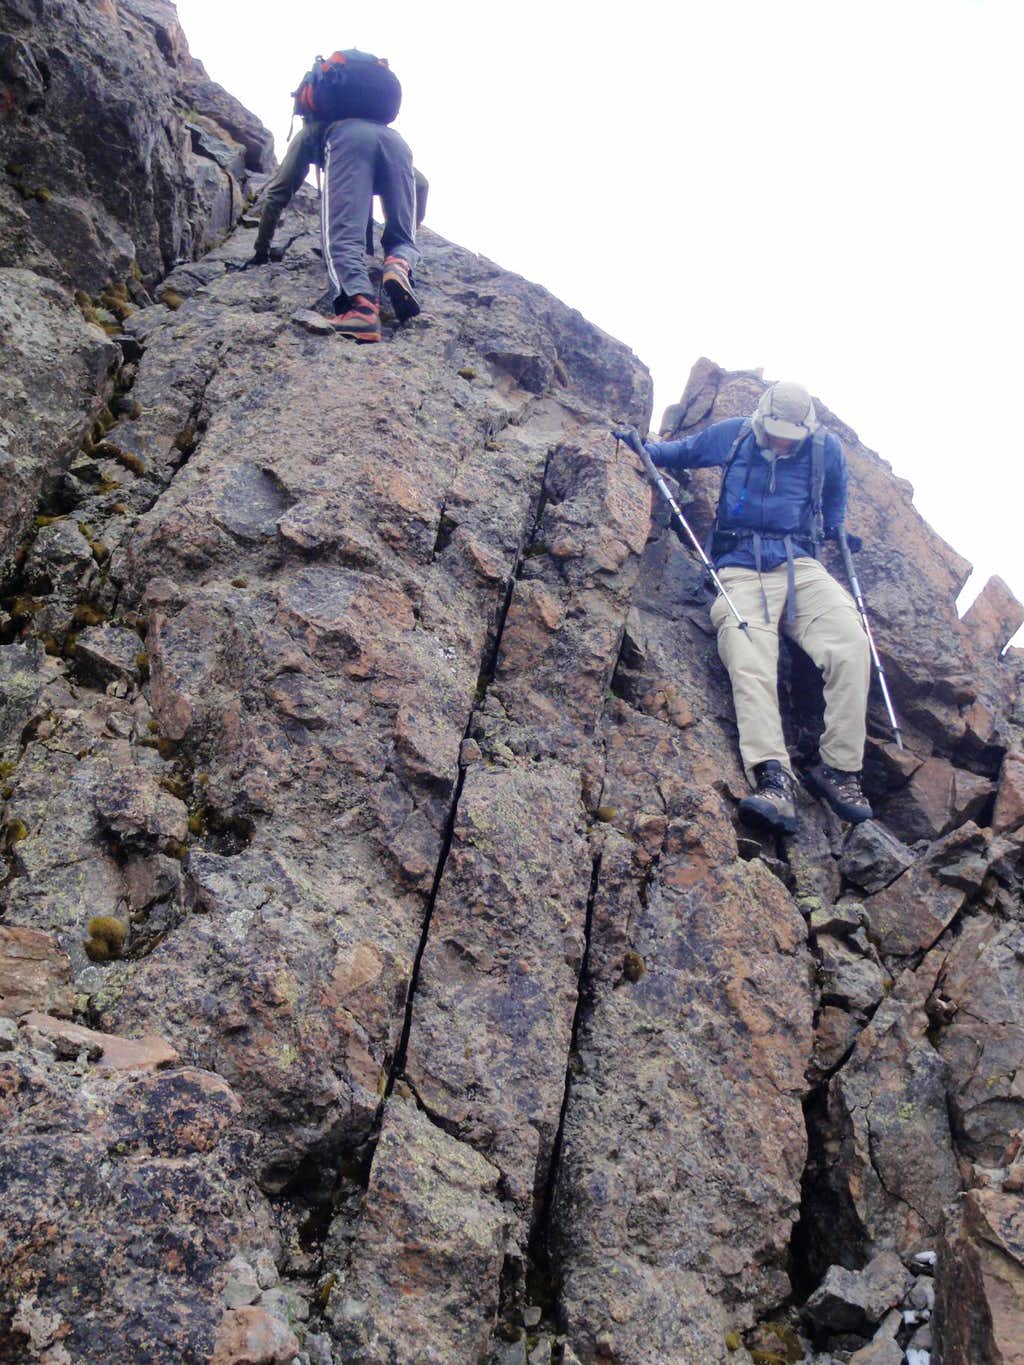 Downclimbing The Cliff